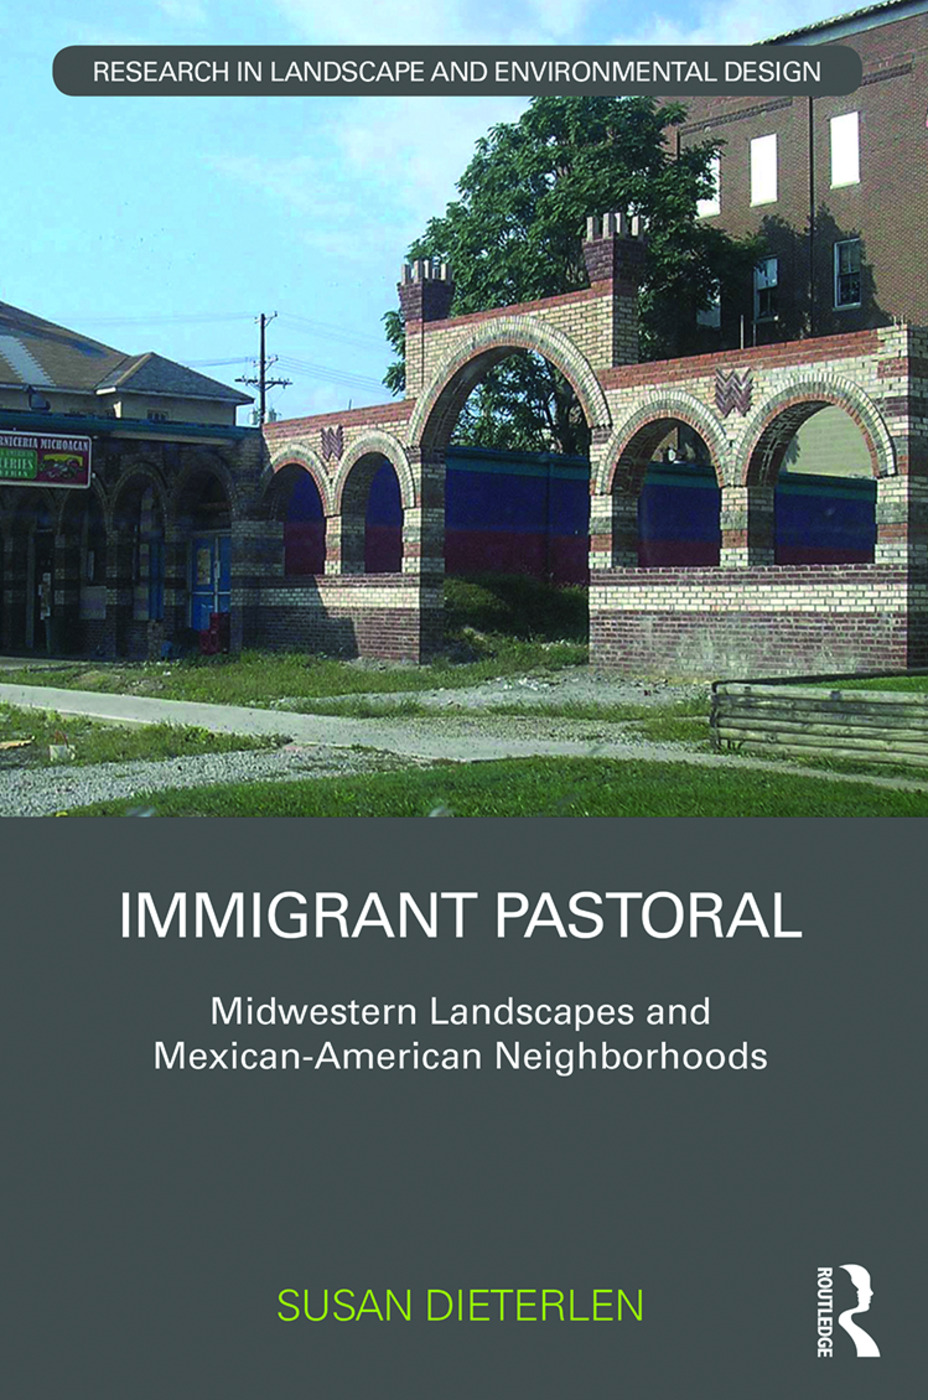 Immigrant Pastoral: Midwestern Landscapes and Mexican-American Neighborhoods book cover